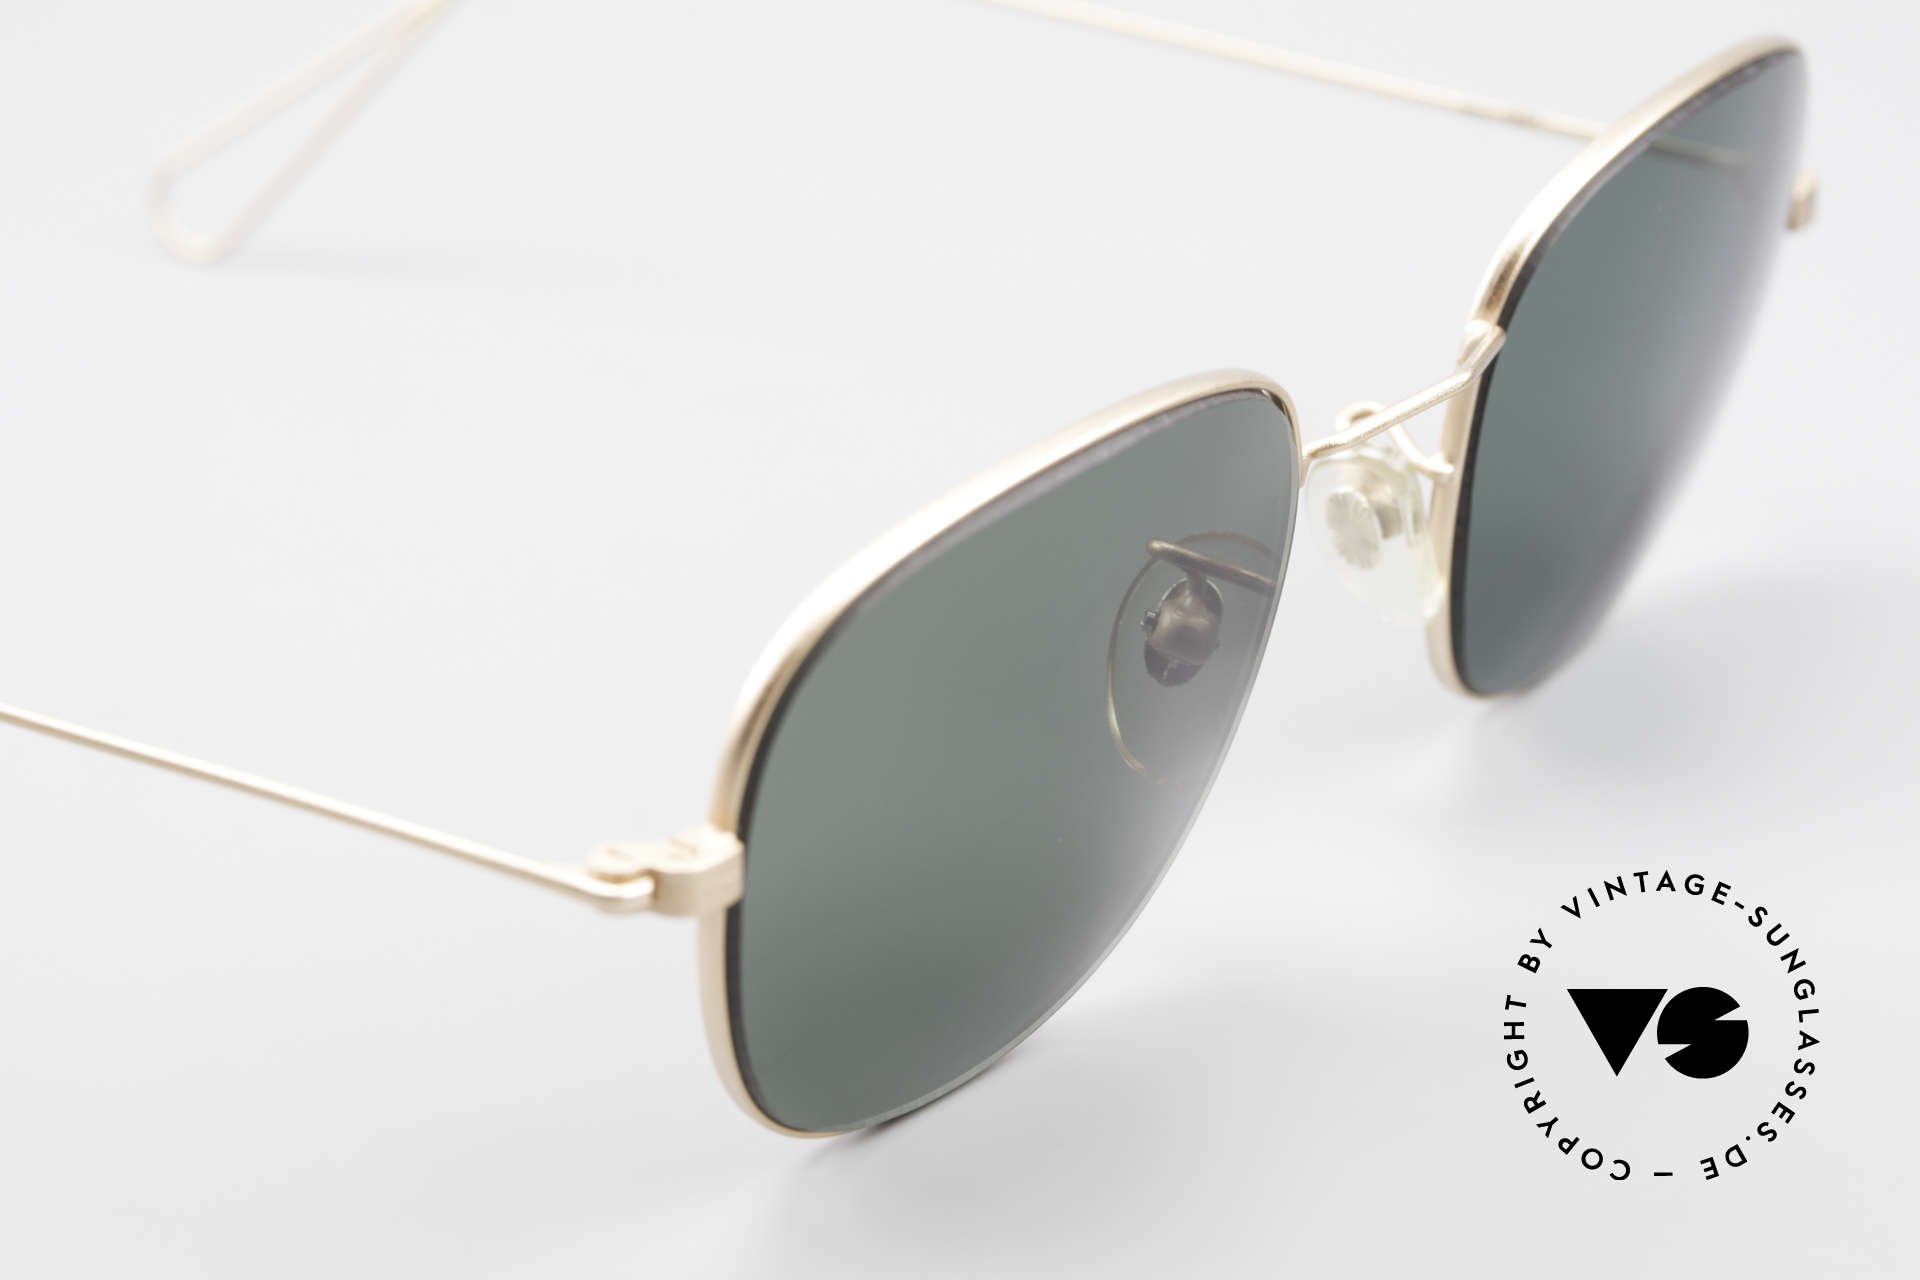 Cutler And Gross 0307 Classic 90s Designer Sunglasses, never worn; like all our vintage Cutler & Gross eyewear, Made for Men and Women